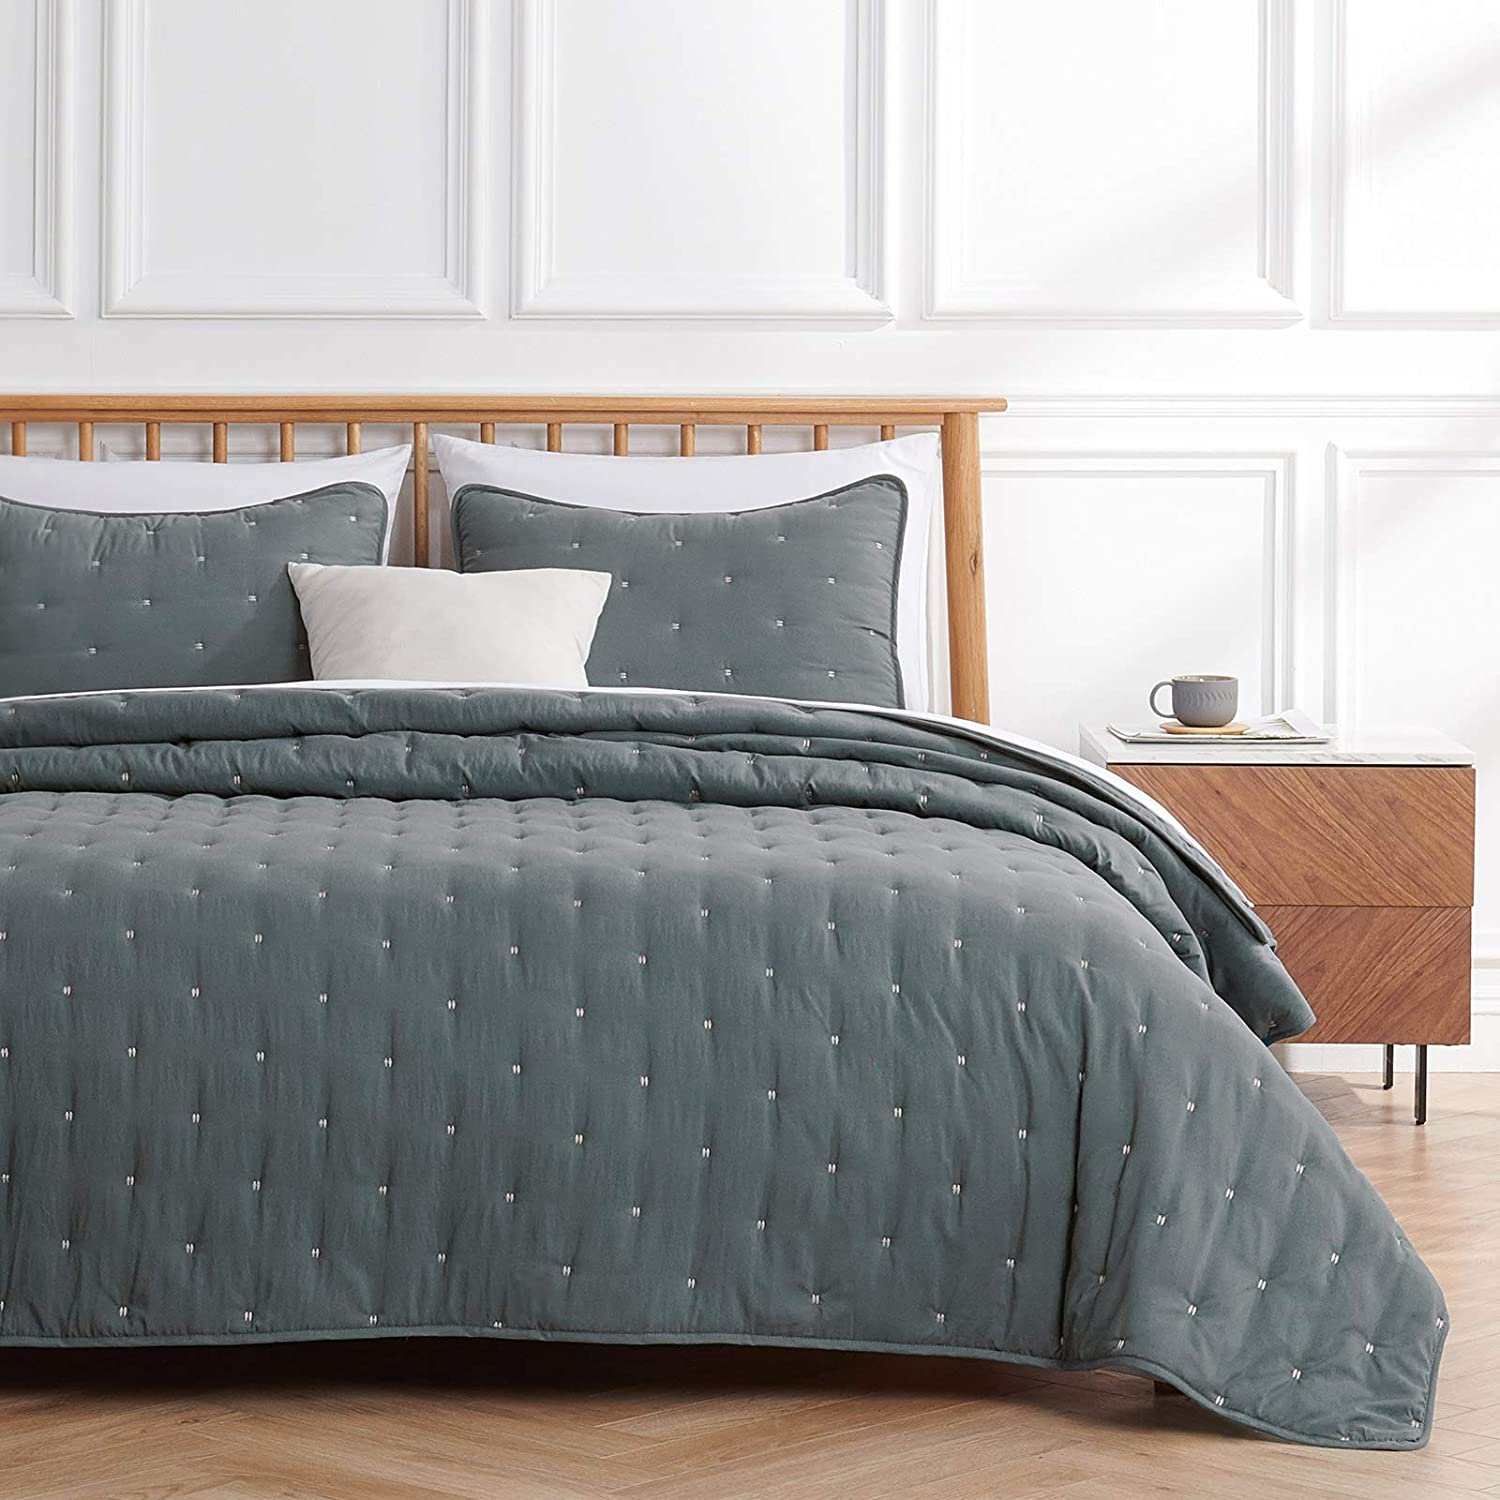 VEEYOO Quilt Sets Queen Bedspread - Charcoal Quilt Queen (92x92 inches) Unique Stitches Pattern Quilting Bedspread, 3-Piece Lightweight Coverlet for All Season, 1 Quilt 2 Shams